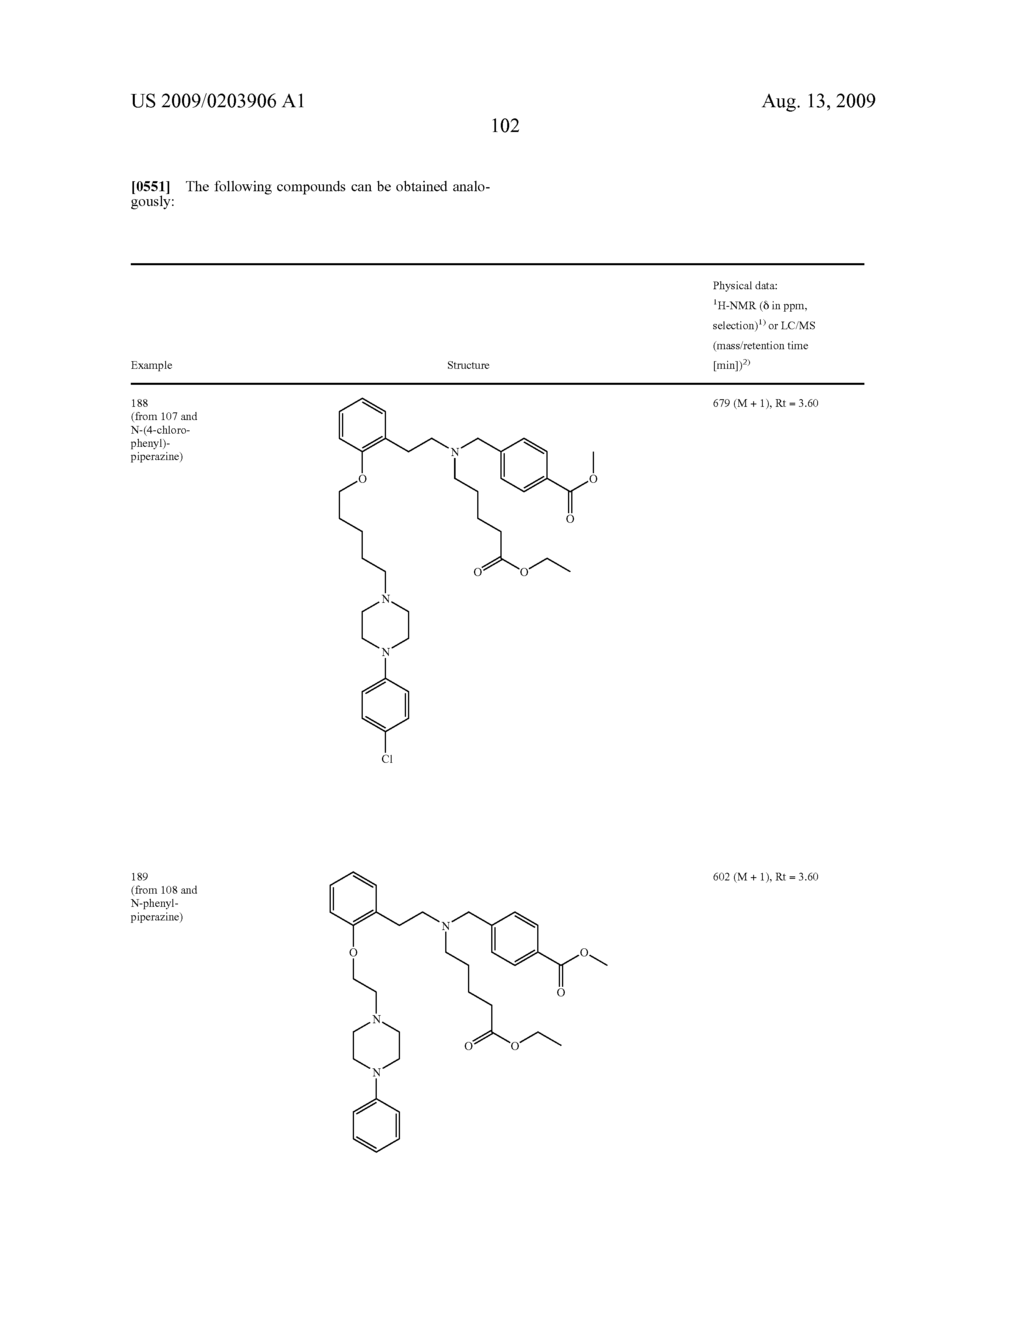 NOVEL AMINODICARBOXYLIC ACID DERIVATIVES HAVING PHARMACEUTICAL PROPERTIES - diagram, schematic, and image 103